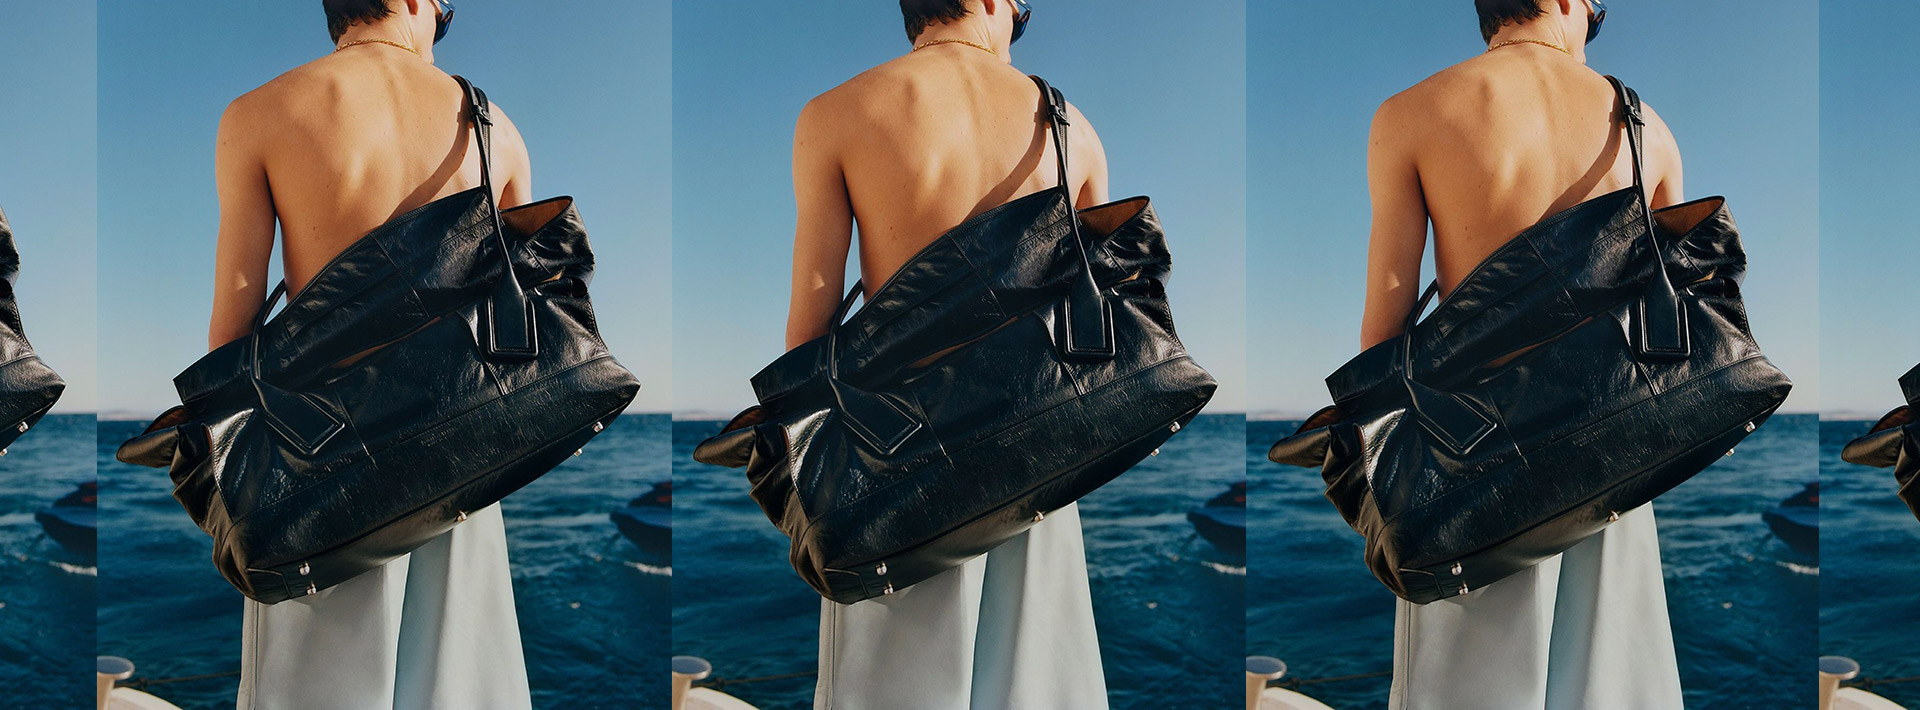 4 words, 1 feeling: saucy at the beach 🕶 Bottega Veneta SS20 snaps by Tyrone Lebon is the one we be waitin' for, this season.